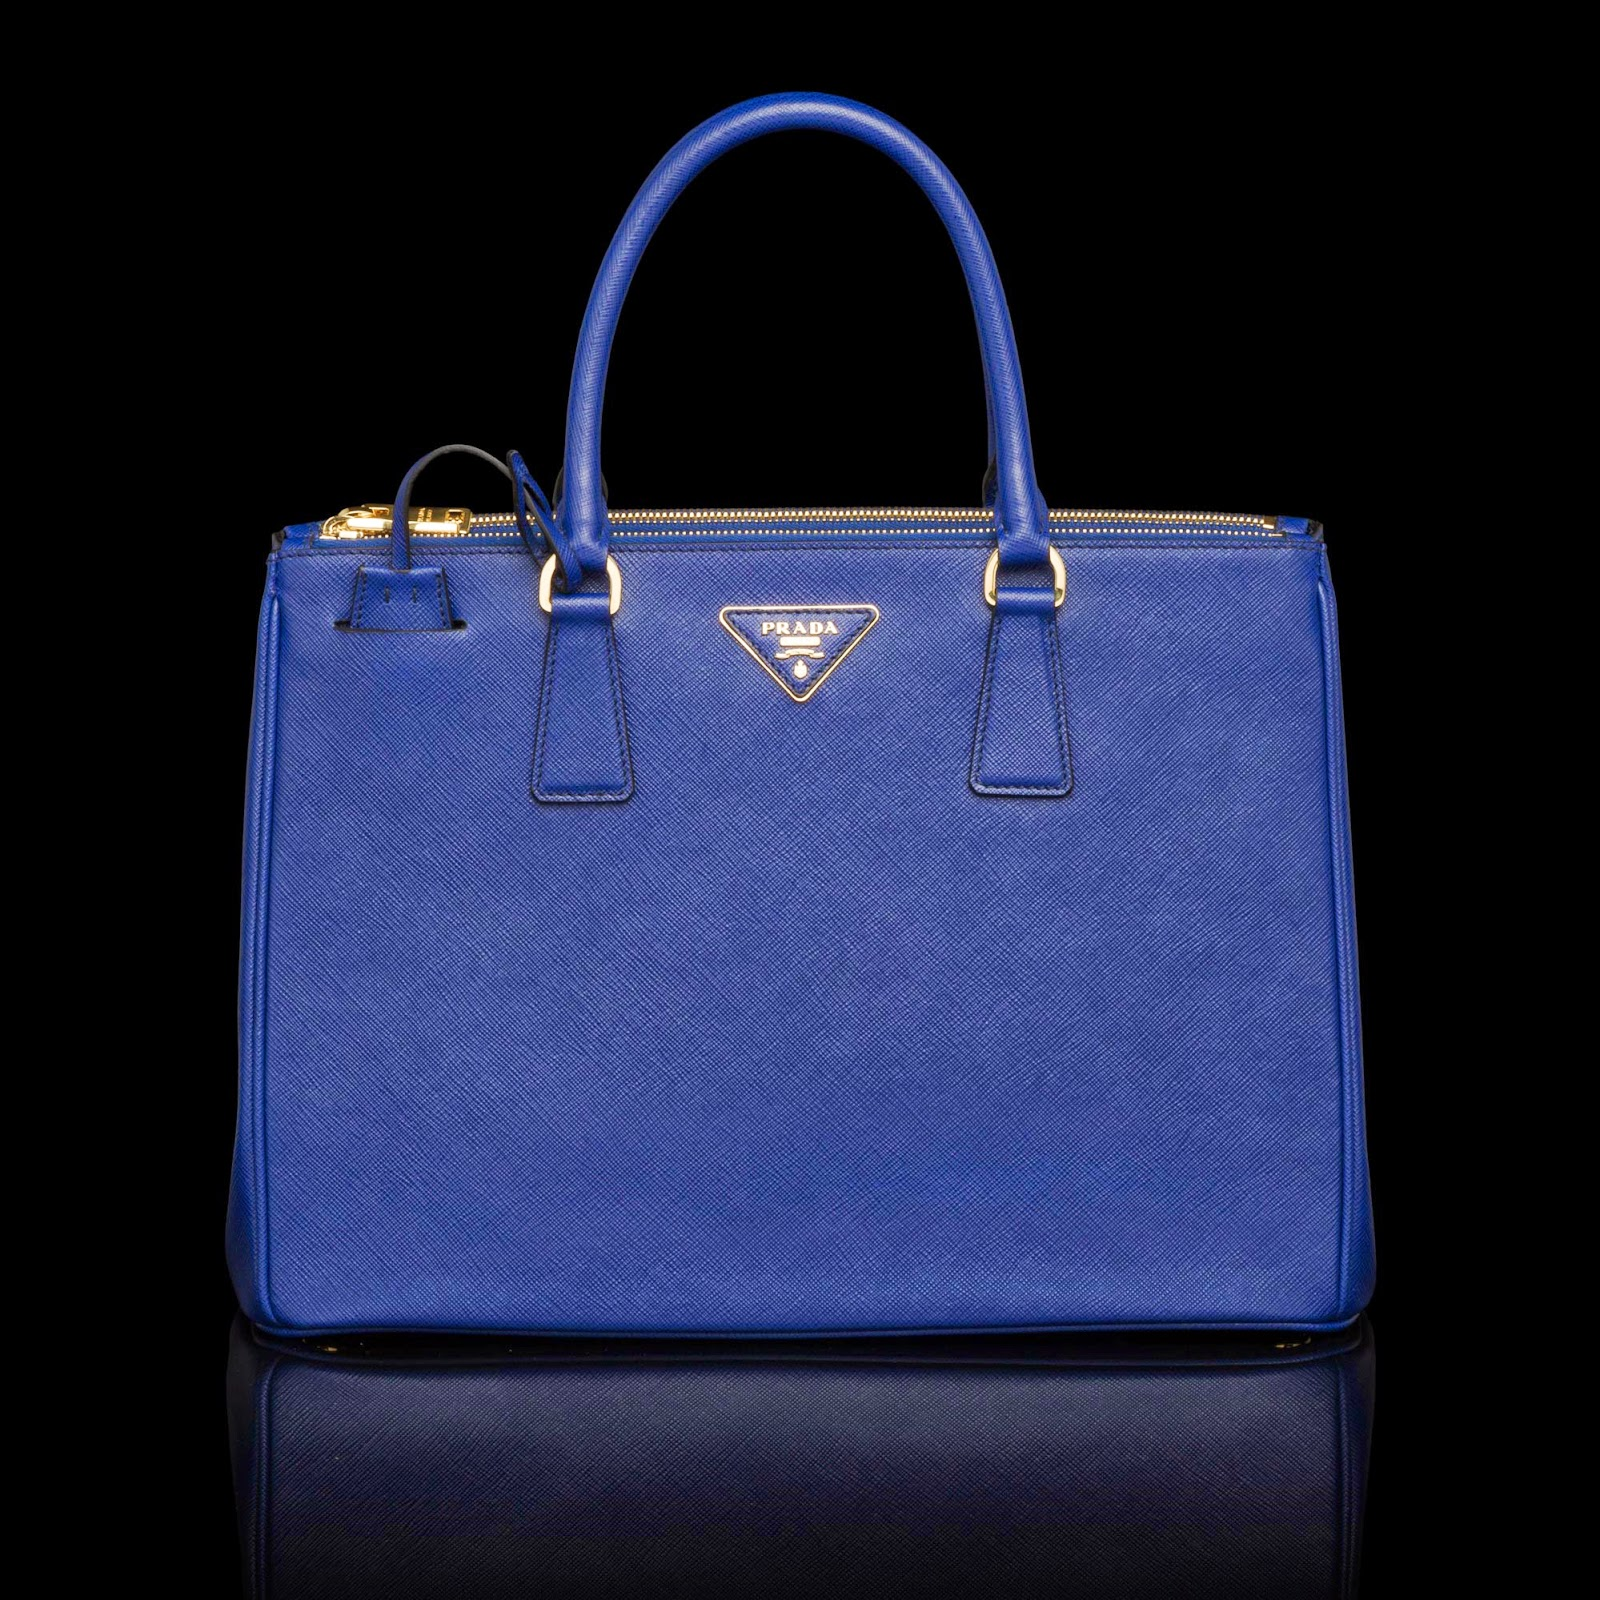 Neo LUXuries: PRADA Saffiano Calf Leather Top Handle Tote - BN2274